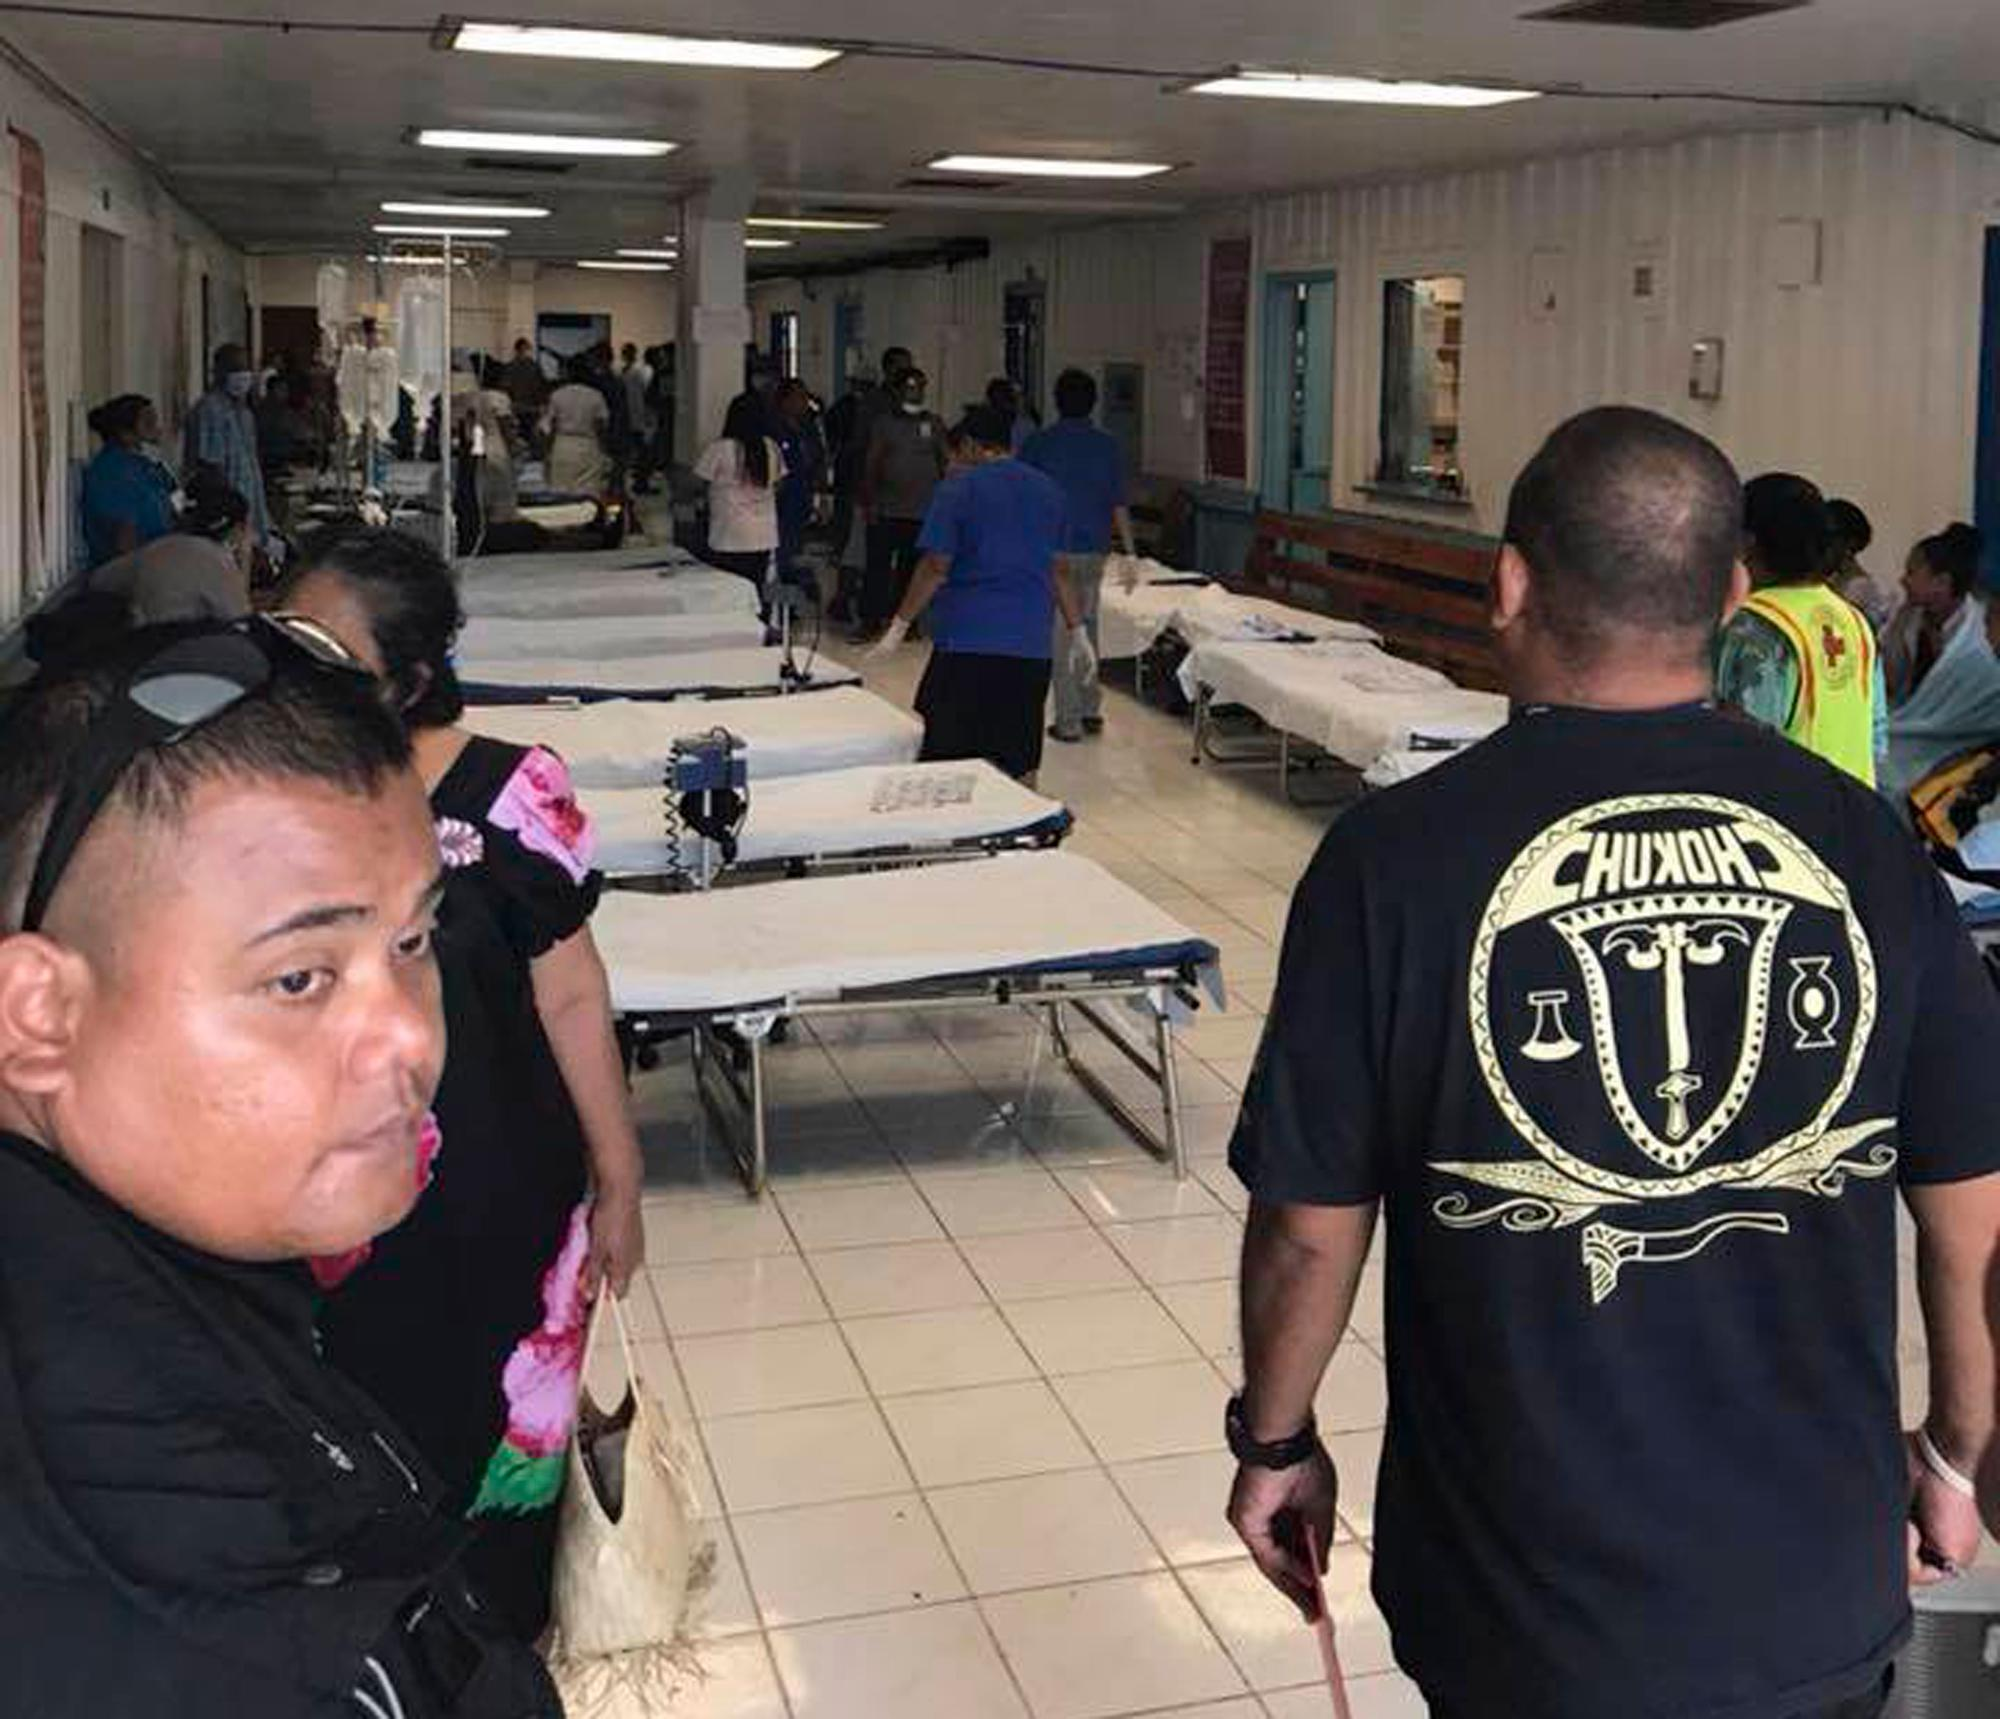 This image provided by Matthew Colson shows beds at a hospital after an Air Niugini plane has crash landed in a Pacific lagoon, near Chuuk Airport in Chuuk Island, Federated States of Micronesia, Friday, Sept. 28, 2018. All of the passengers and crew survived the crash landing. The Air Niugini plane hit the water short of the runway while trying to land at the island, according to the airline. (Matthew Colson via AP)